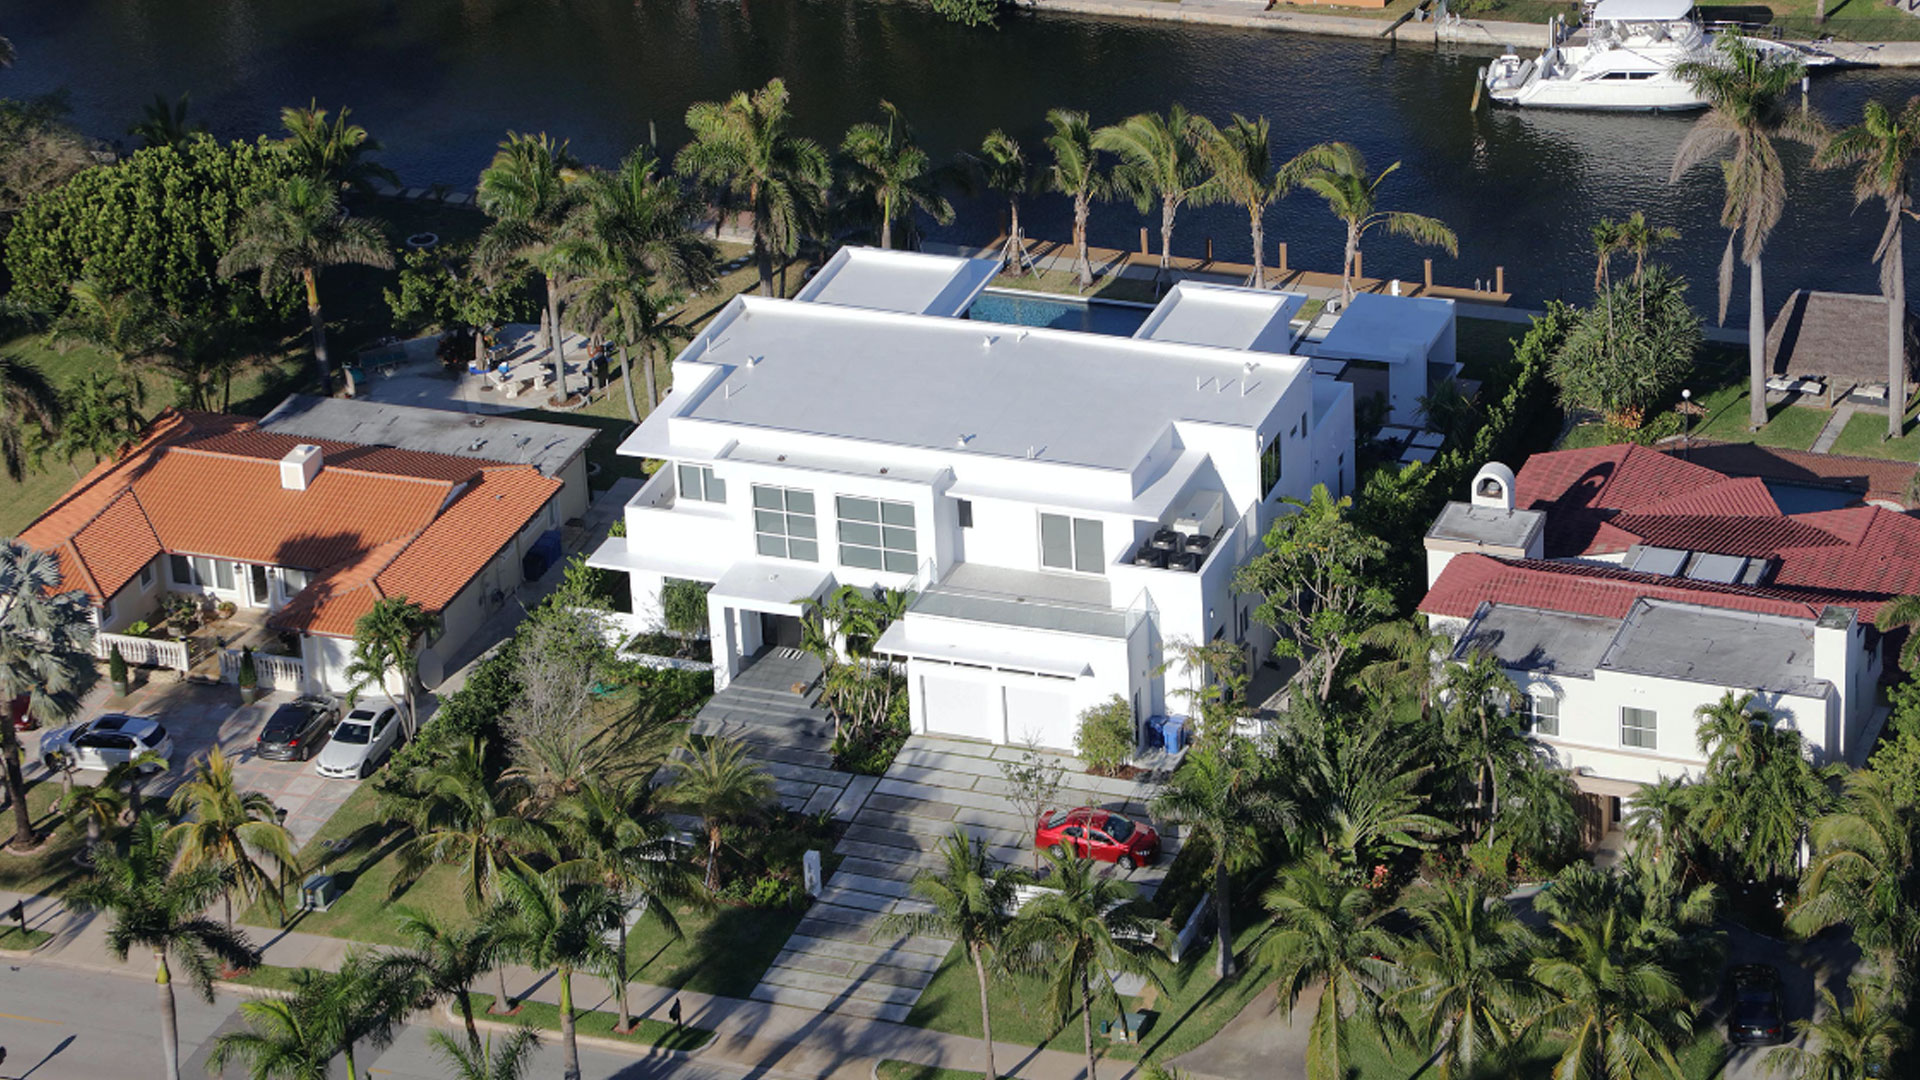 Golden Beach Miami Architecture Aerial Waterfront Luxury Contemporary Pool Driveway Landscape